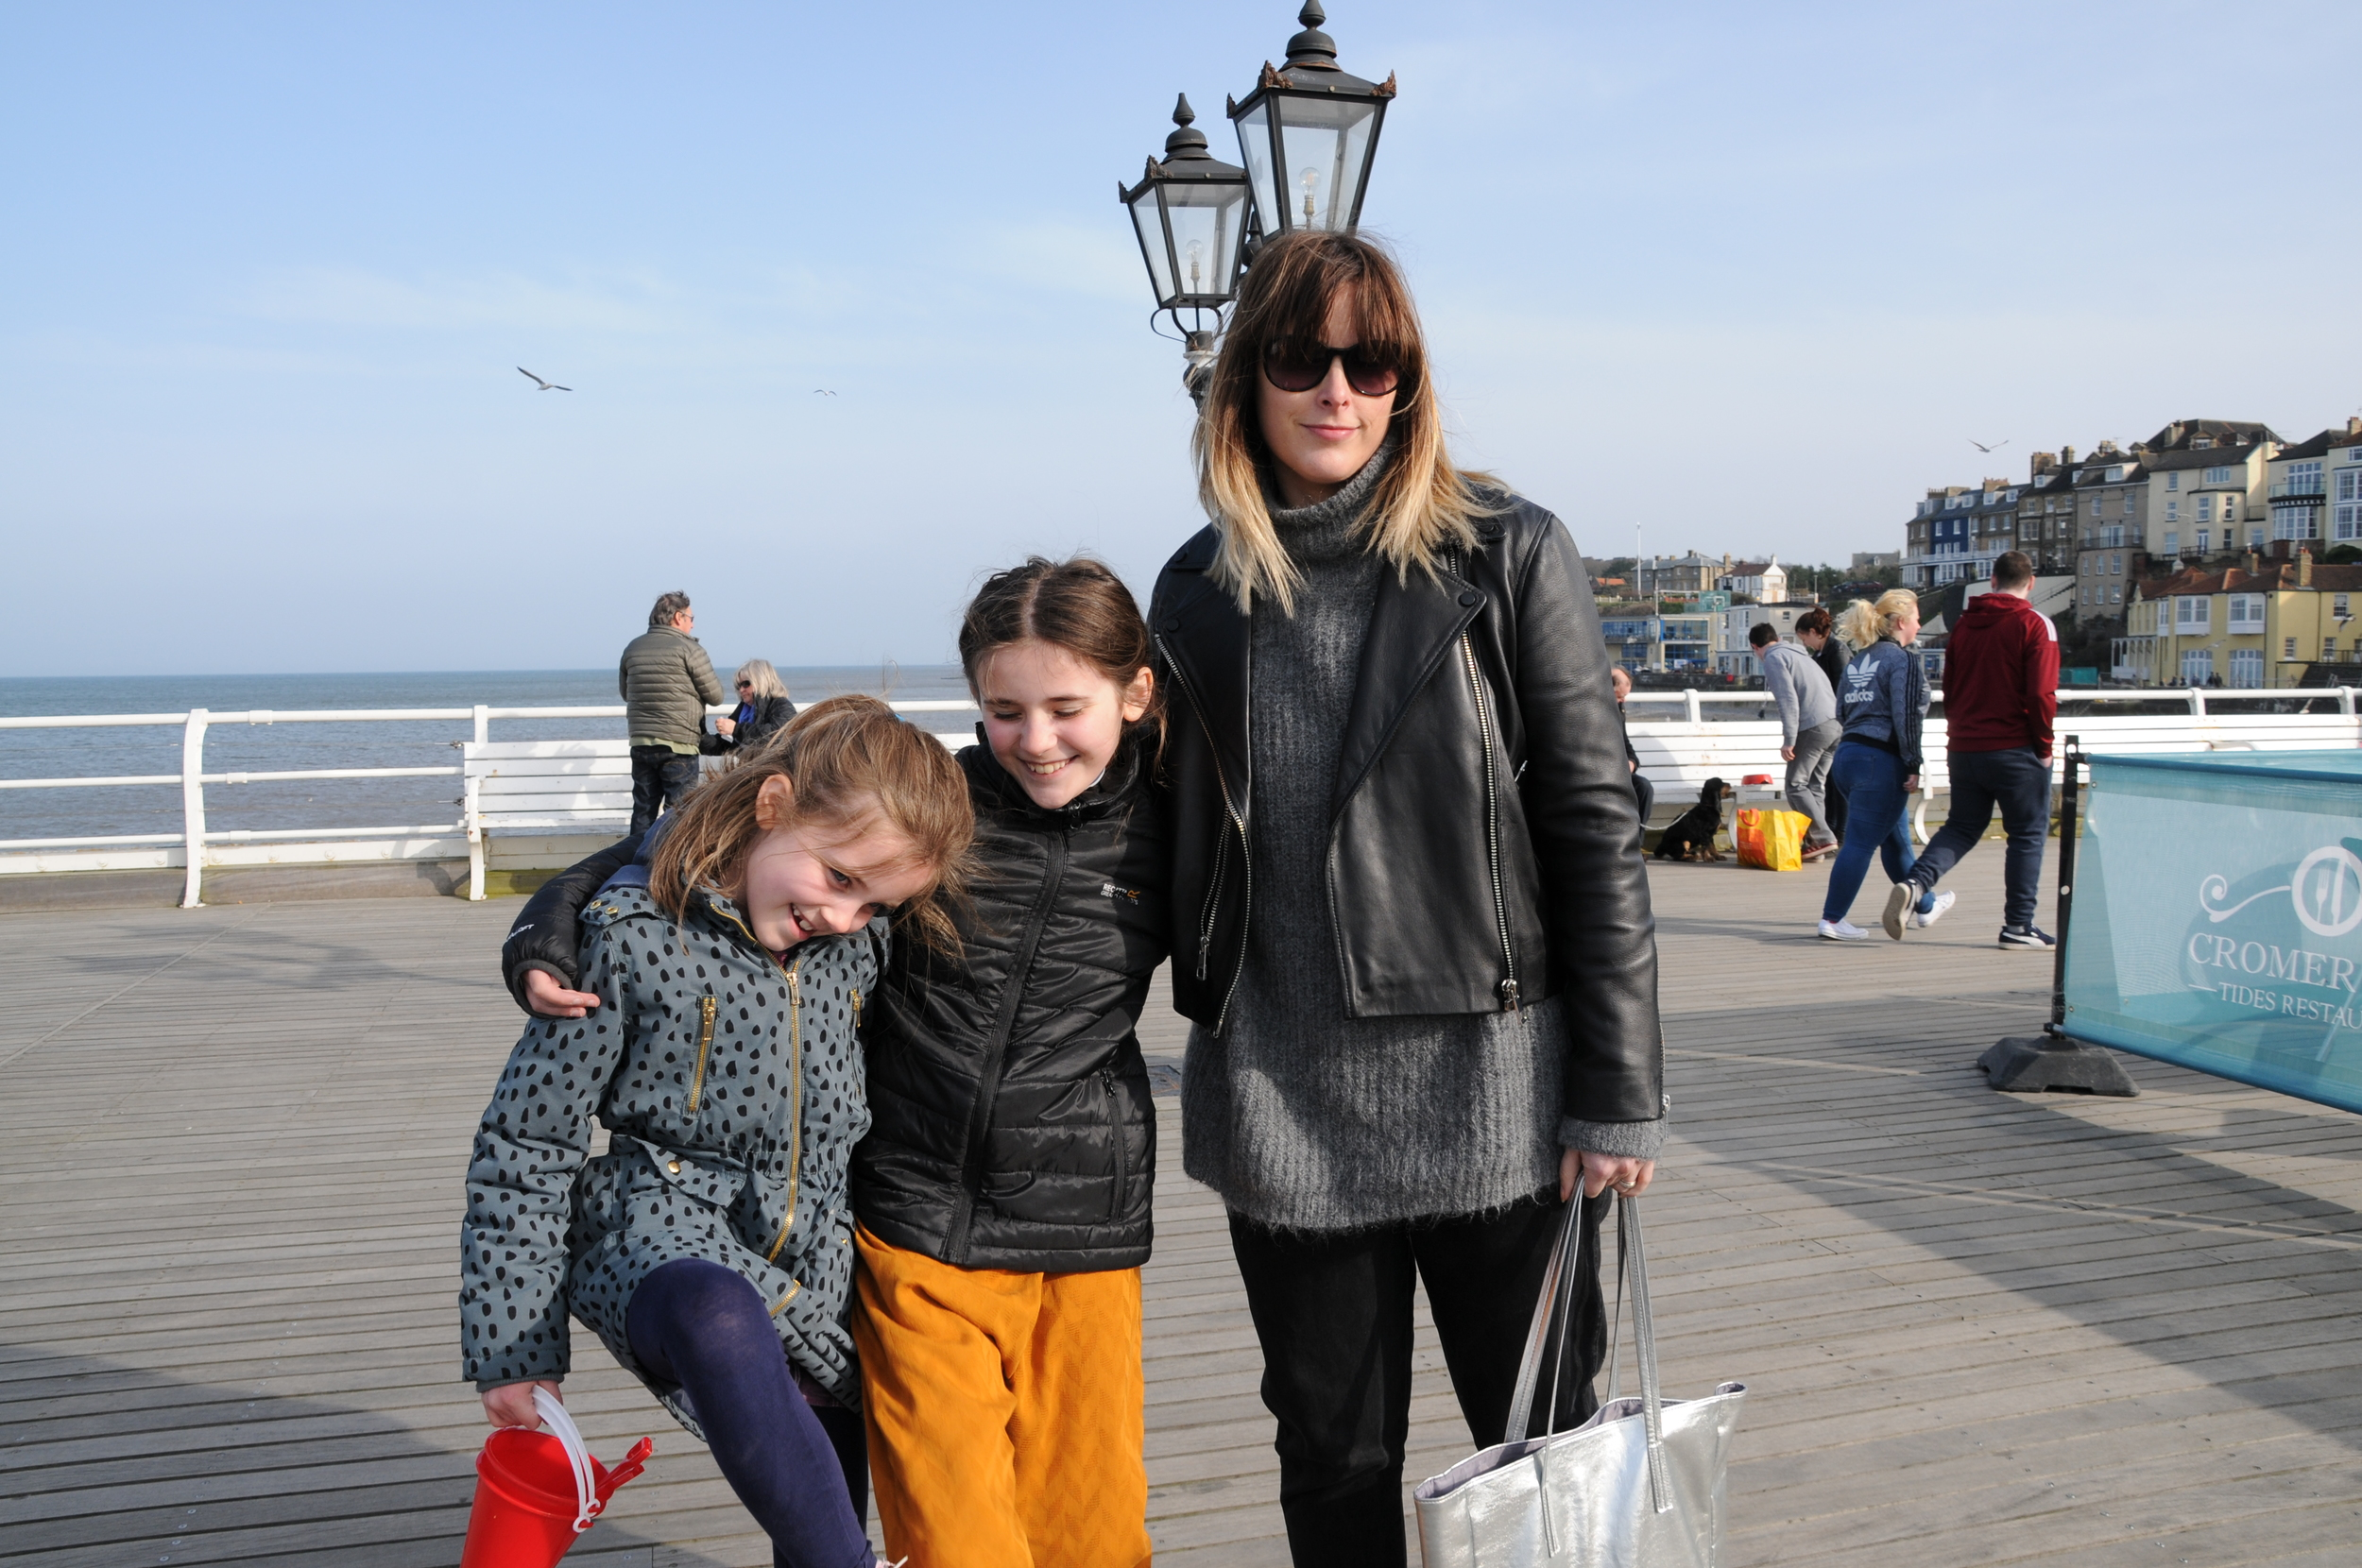 Enjoying the sun on Cromer Pier after a lovely big fish and chip supper at No.1 Cromer.